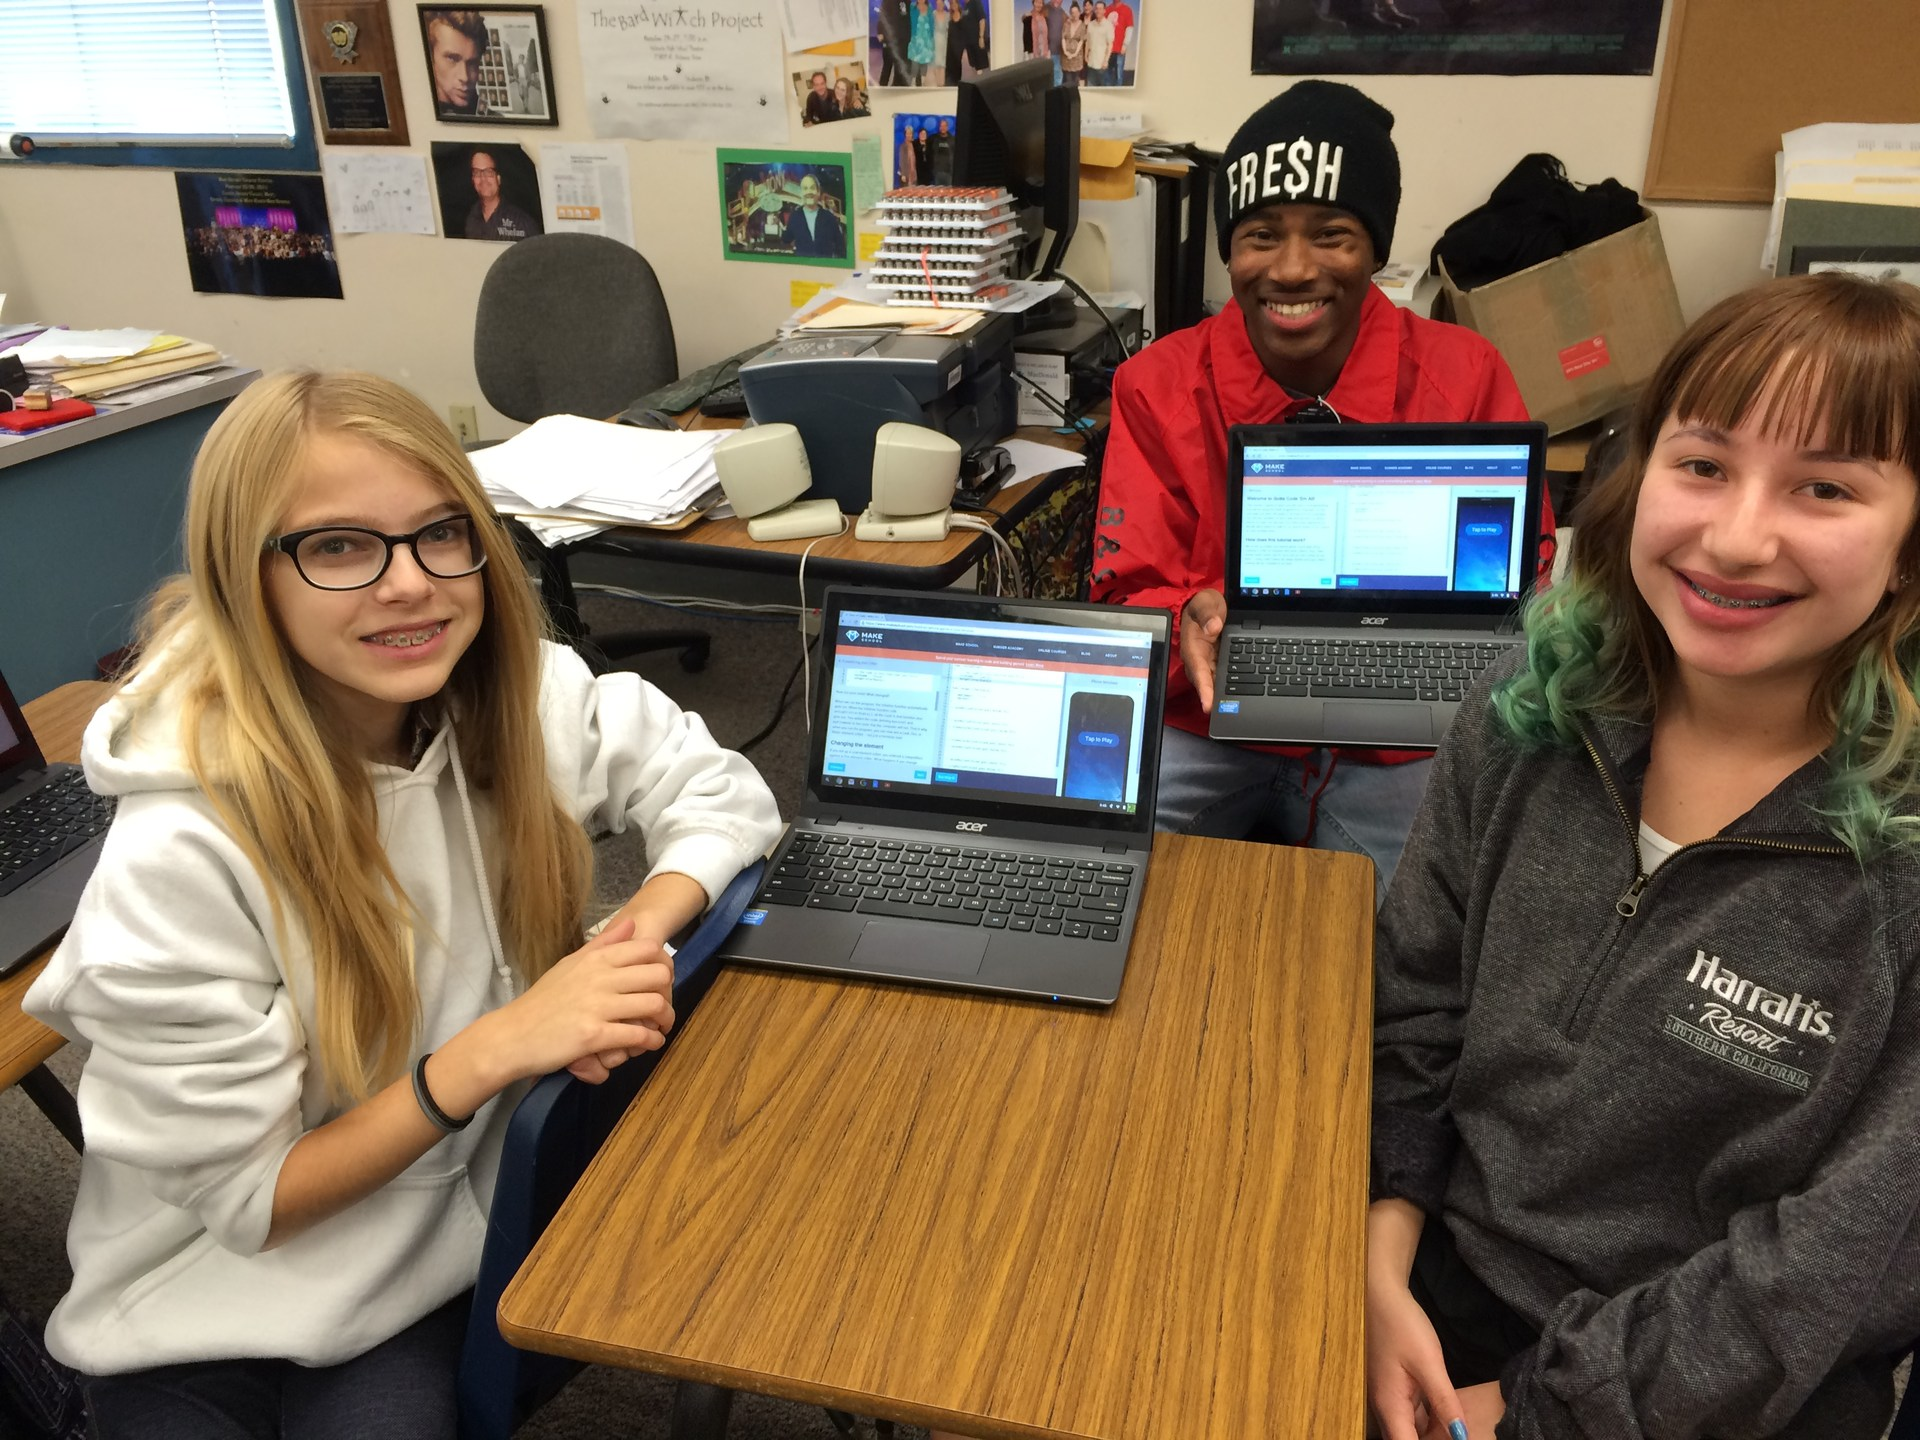 Hour of Code William S. Hart District